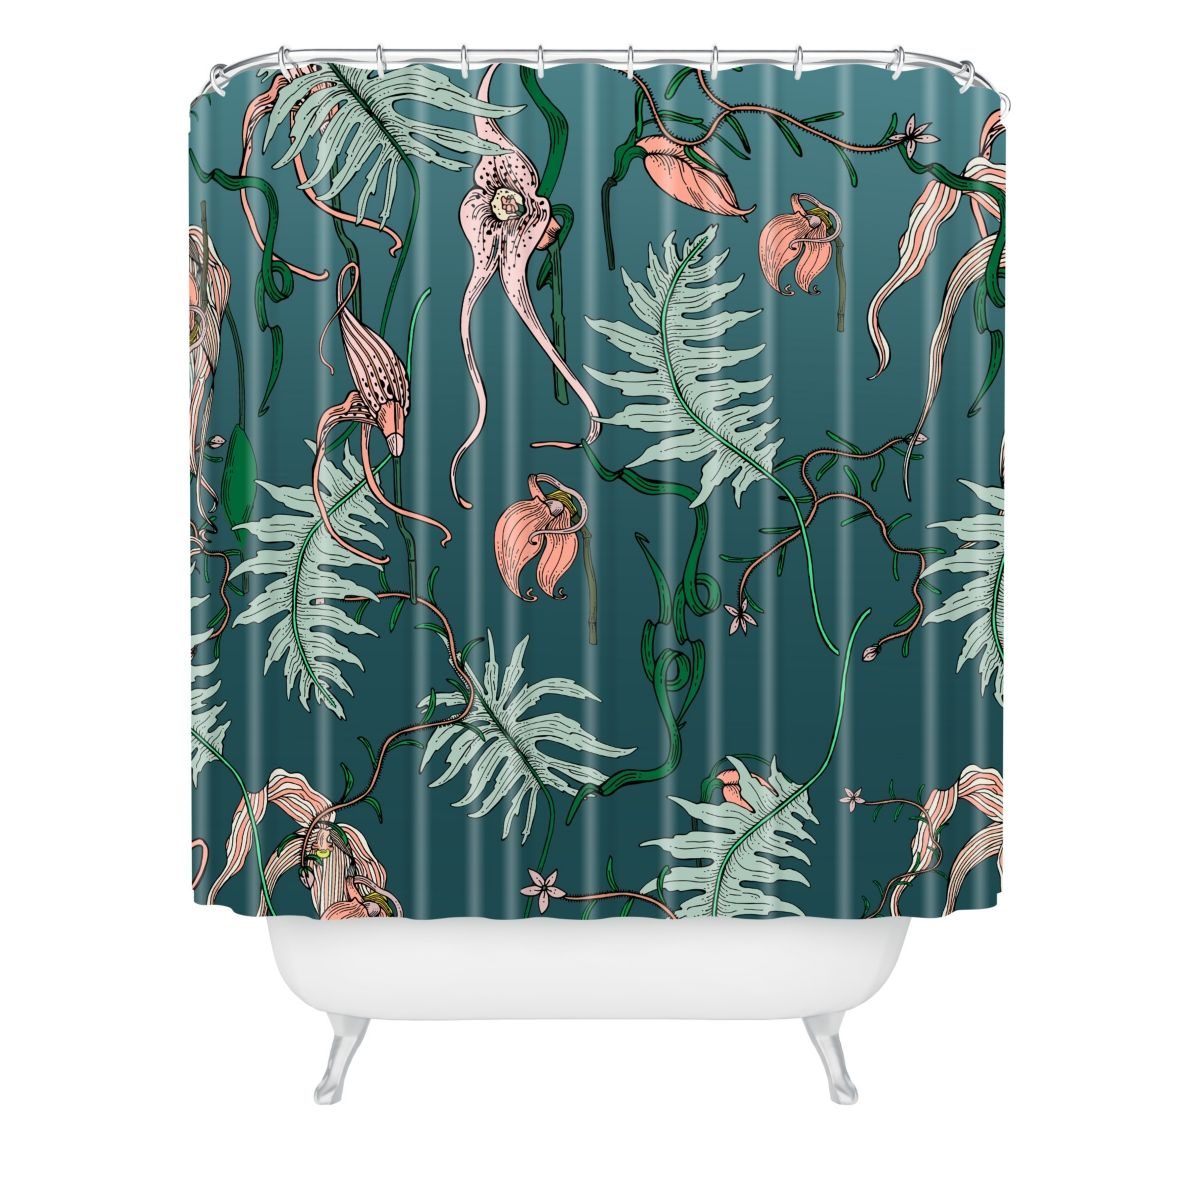 Deny Designs Holli Zollinger Orchid Botanical Shower Curtain Reviews Shower Curtains Bed Bath Macy S Design Curtains Baby Clothes Shops